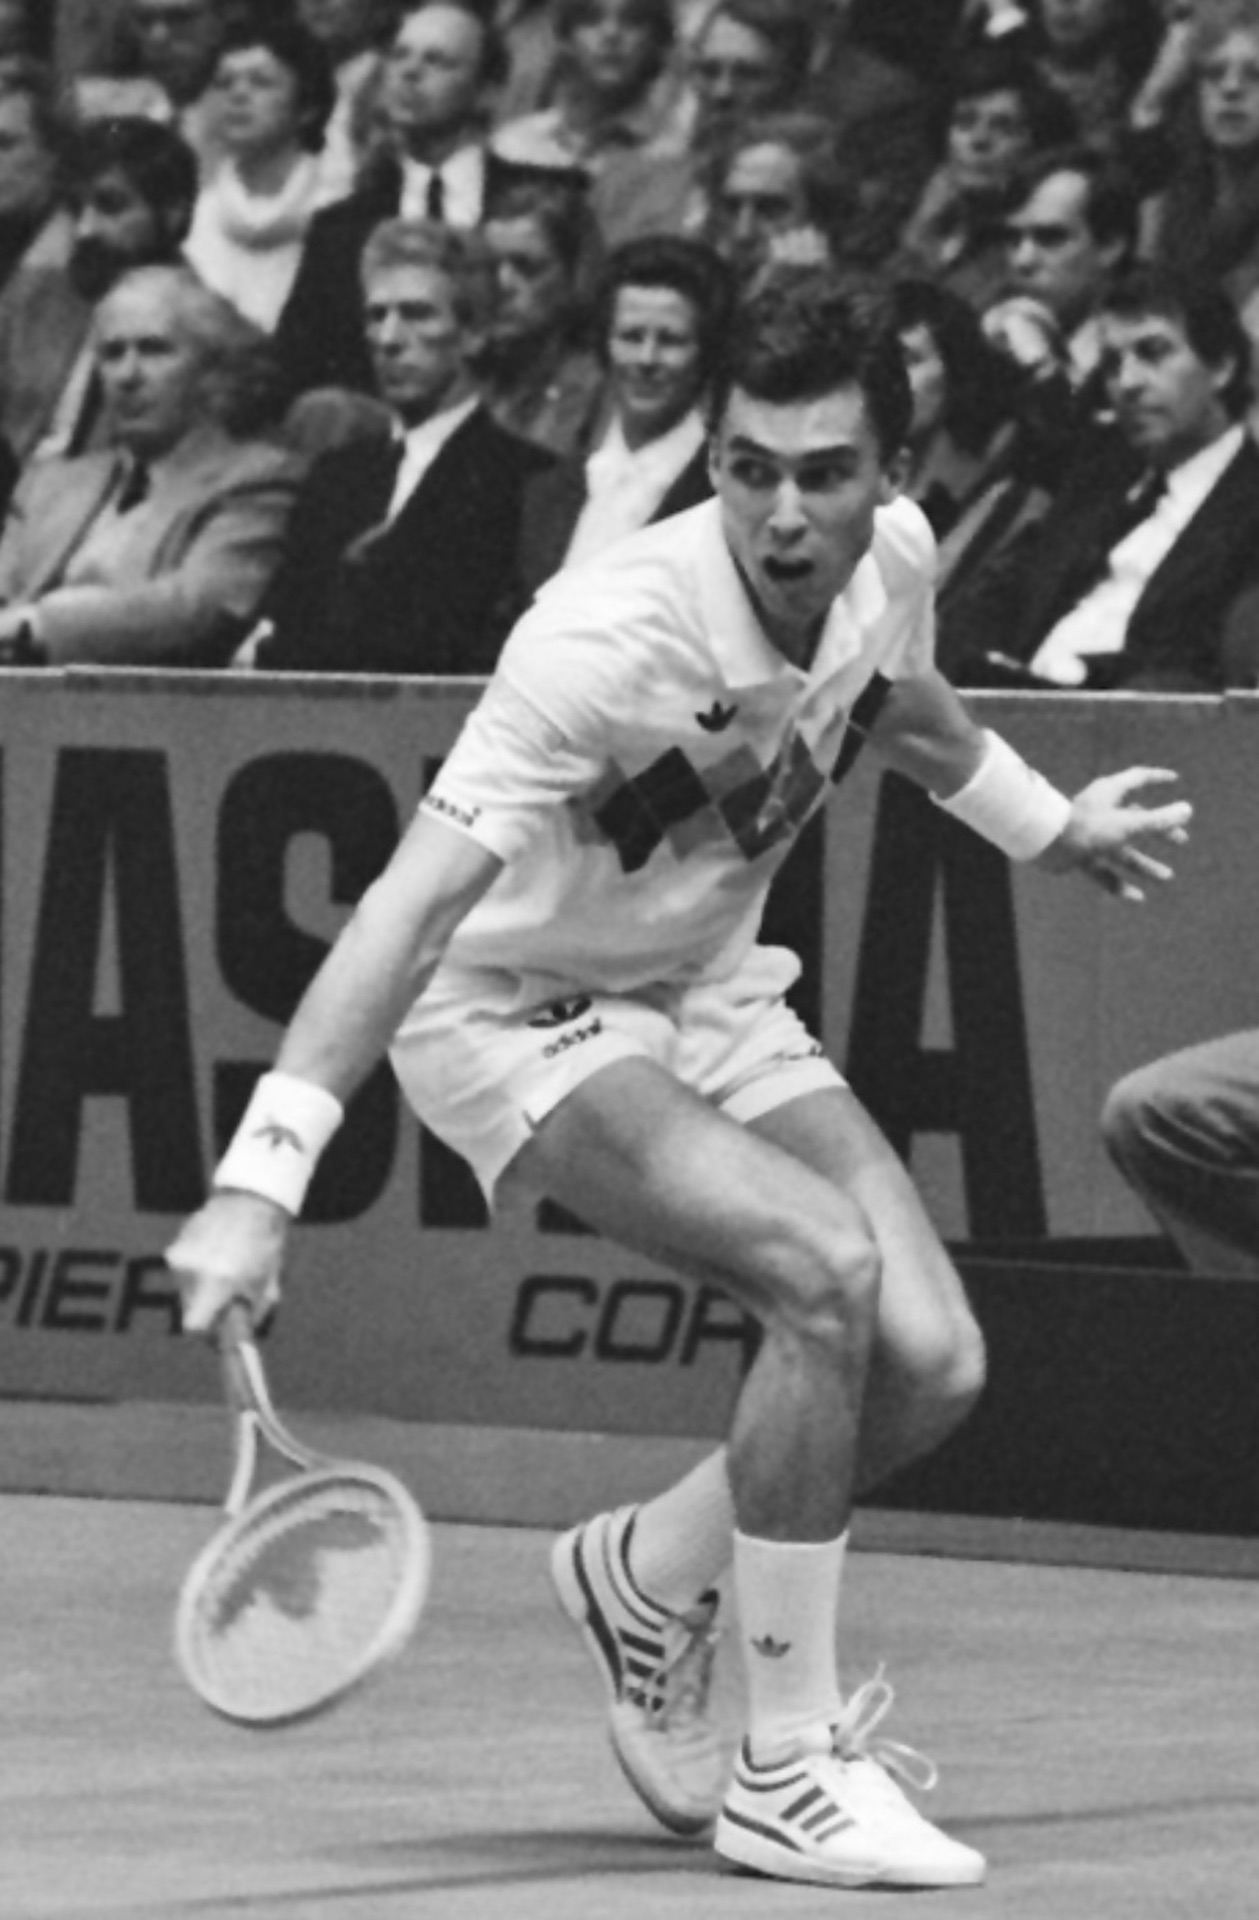 From Tennis to Golf – The story of Ivan Lendl